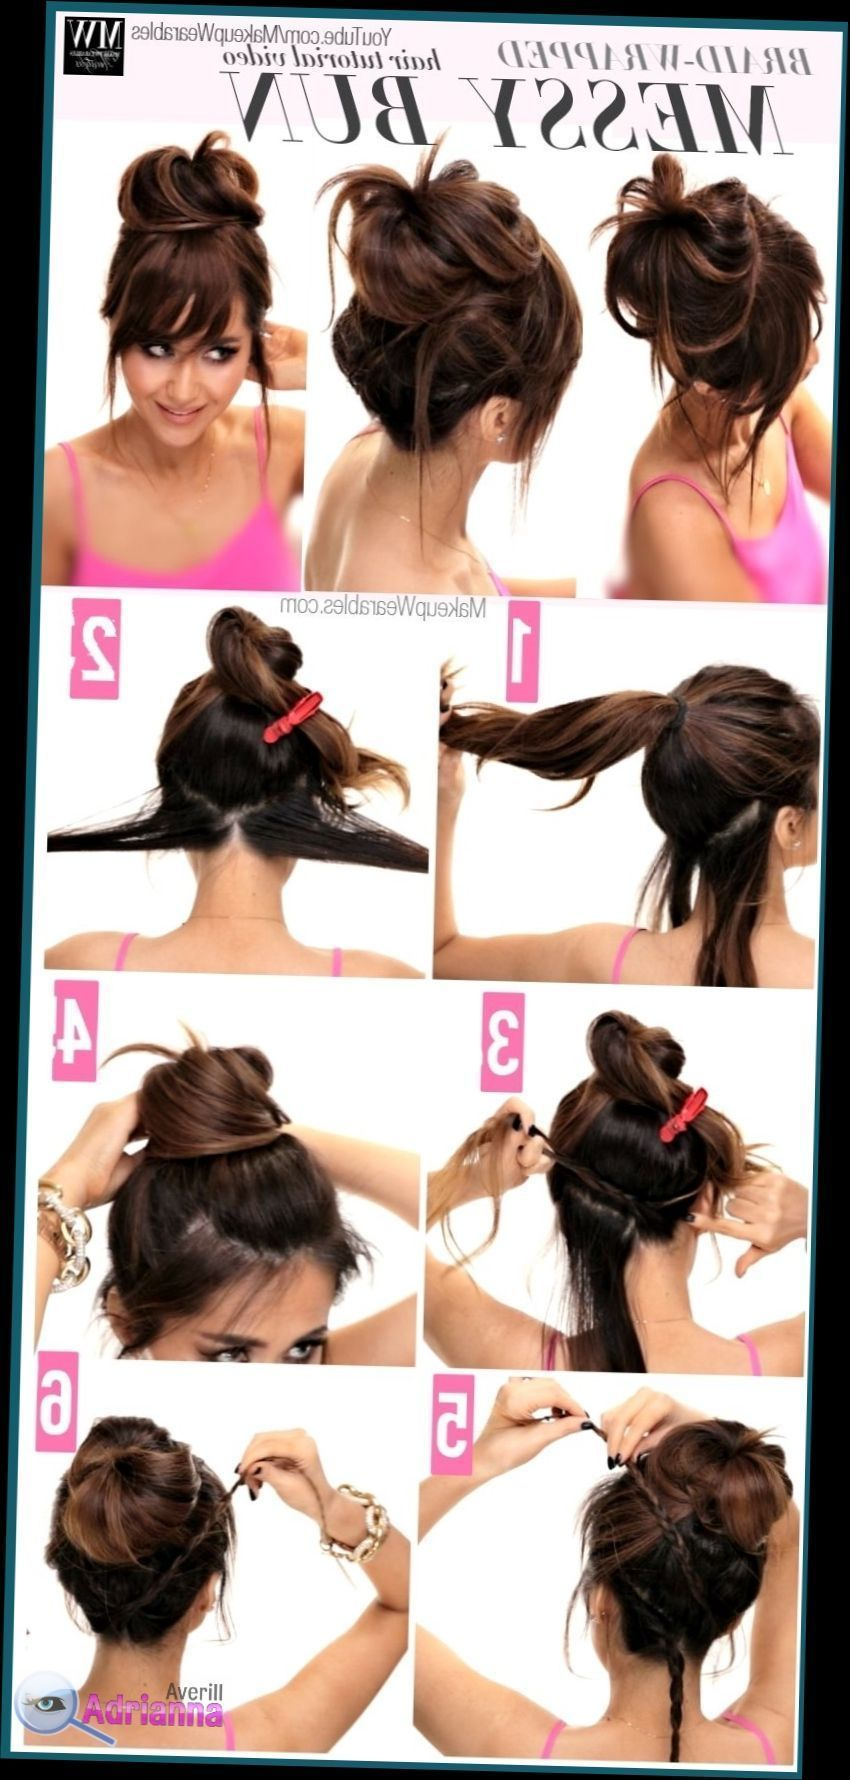 Simple Hairstyle For Saree Step By Step Juda Hairstyle For Saree Step By Step Simple Hairstyle Simple Hairstyle For Saree Hair Styles Easy Hairstyles